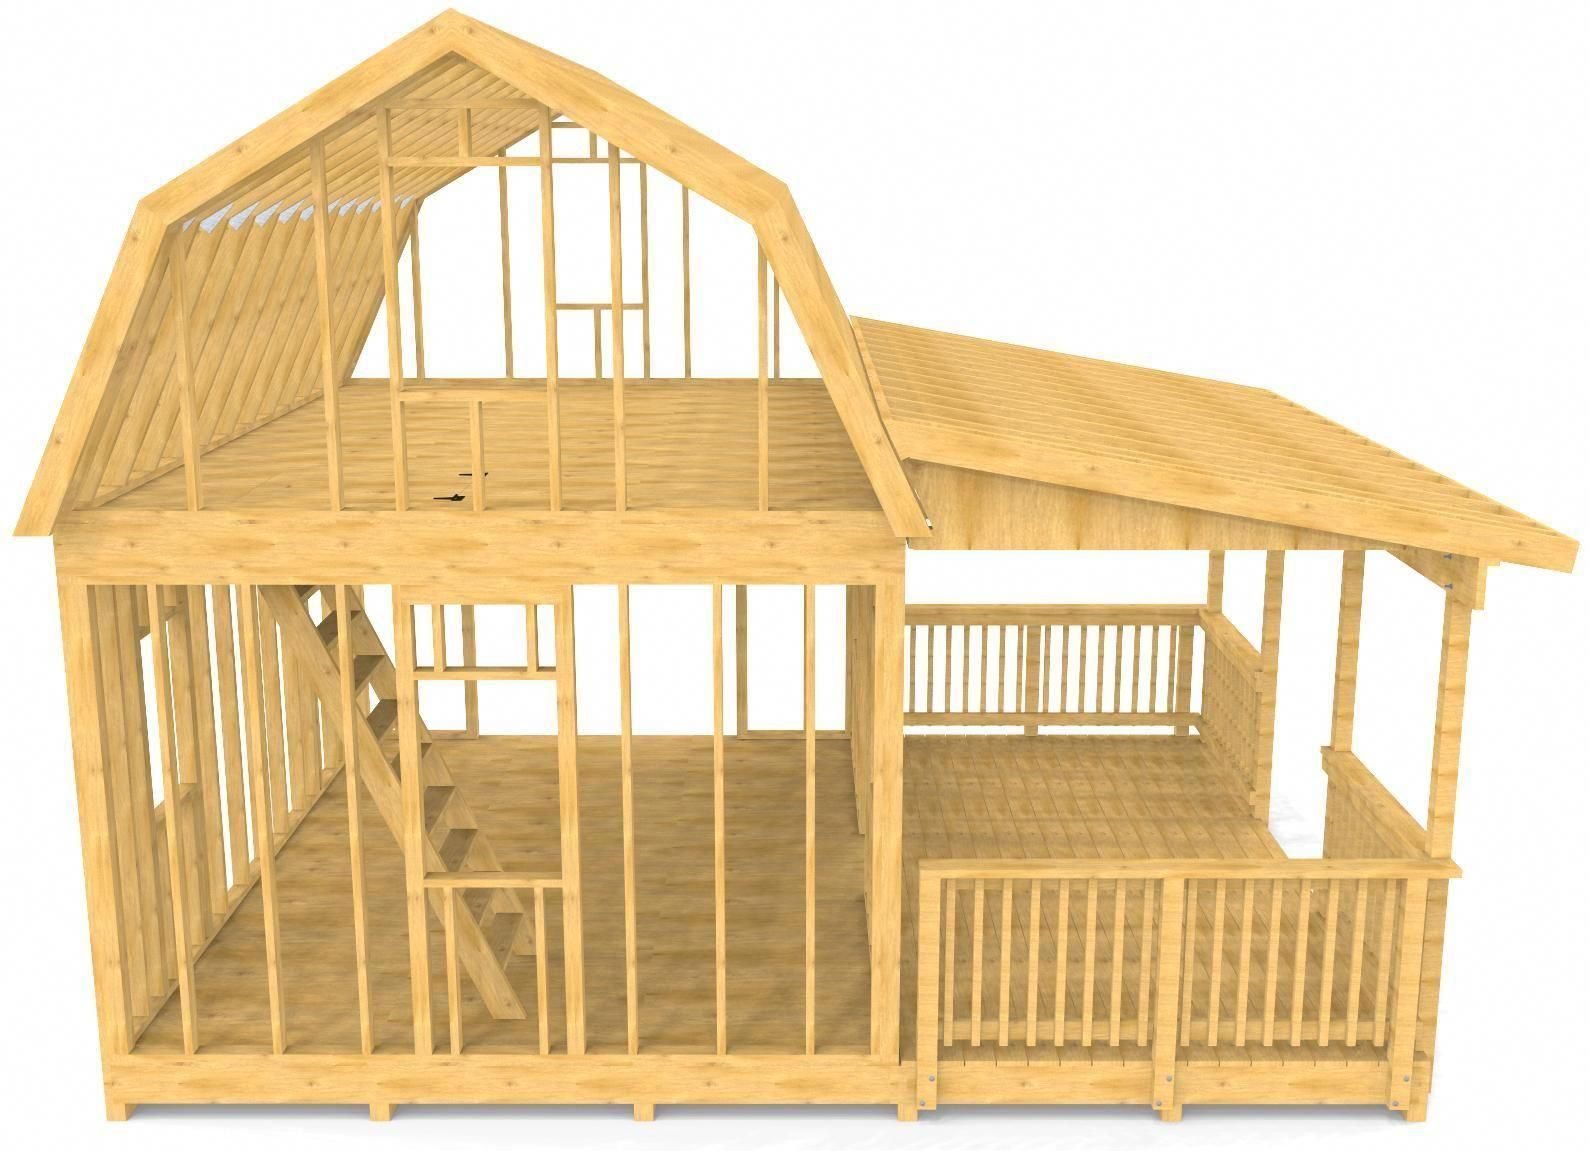 16x20 Barn Shed Plan | 2 Story, Porch Design – Paul's Sheds